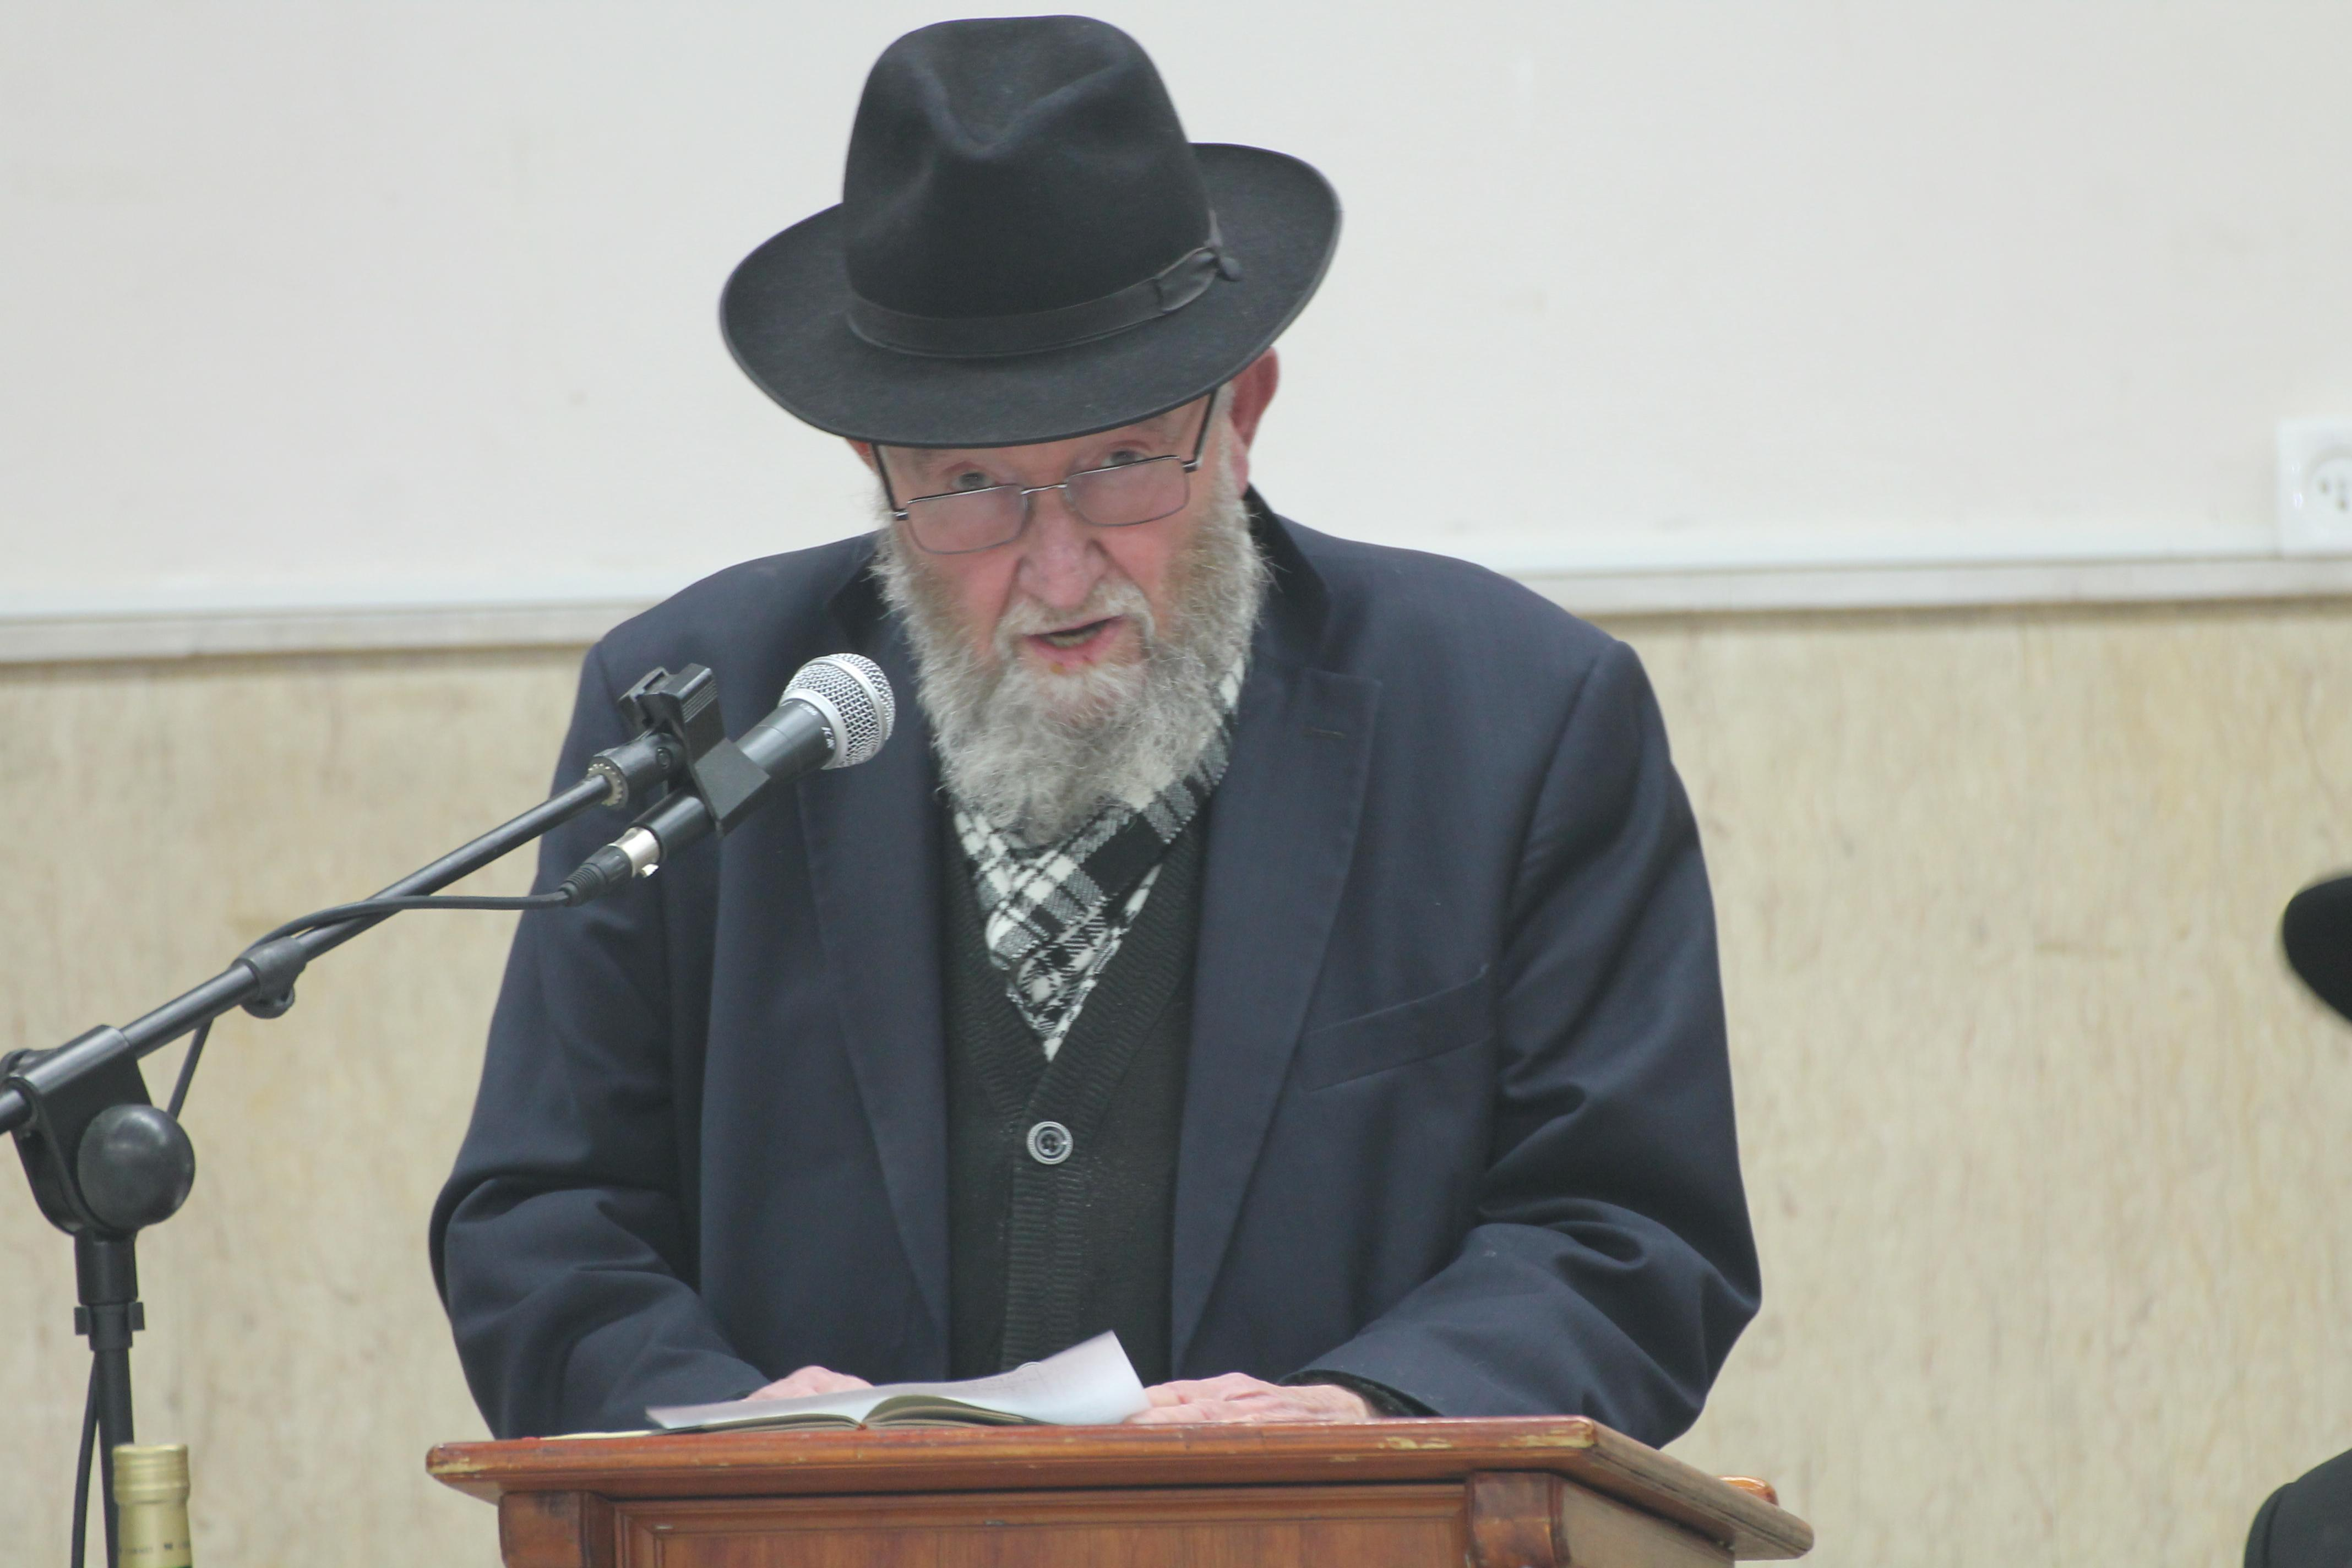 Rabbi Chaim Shtainer